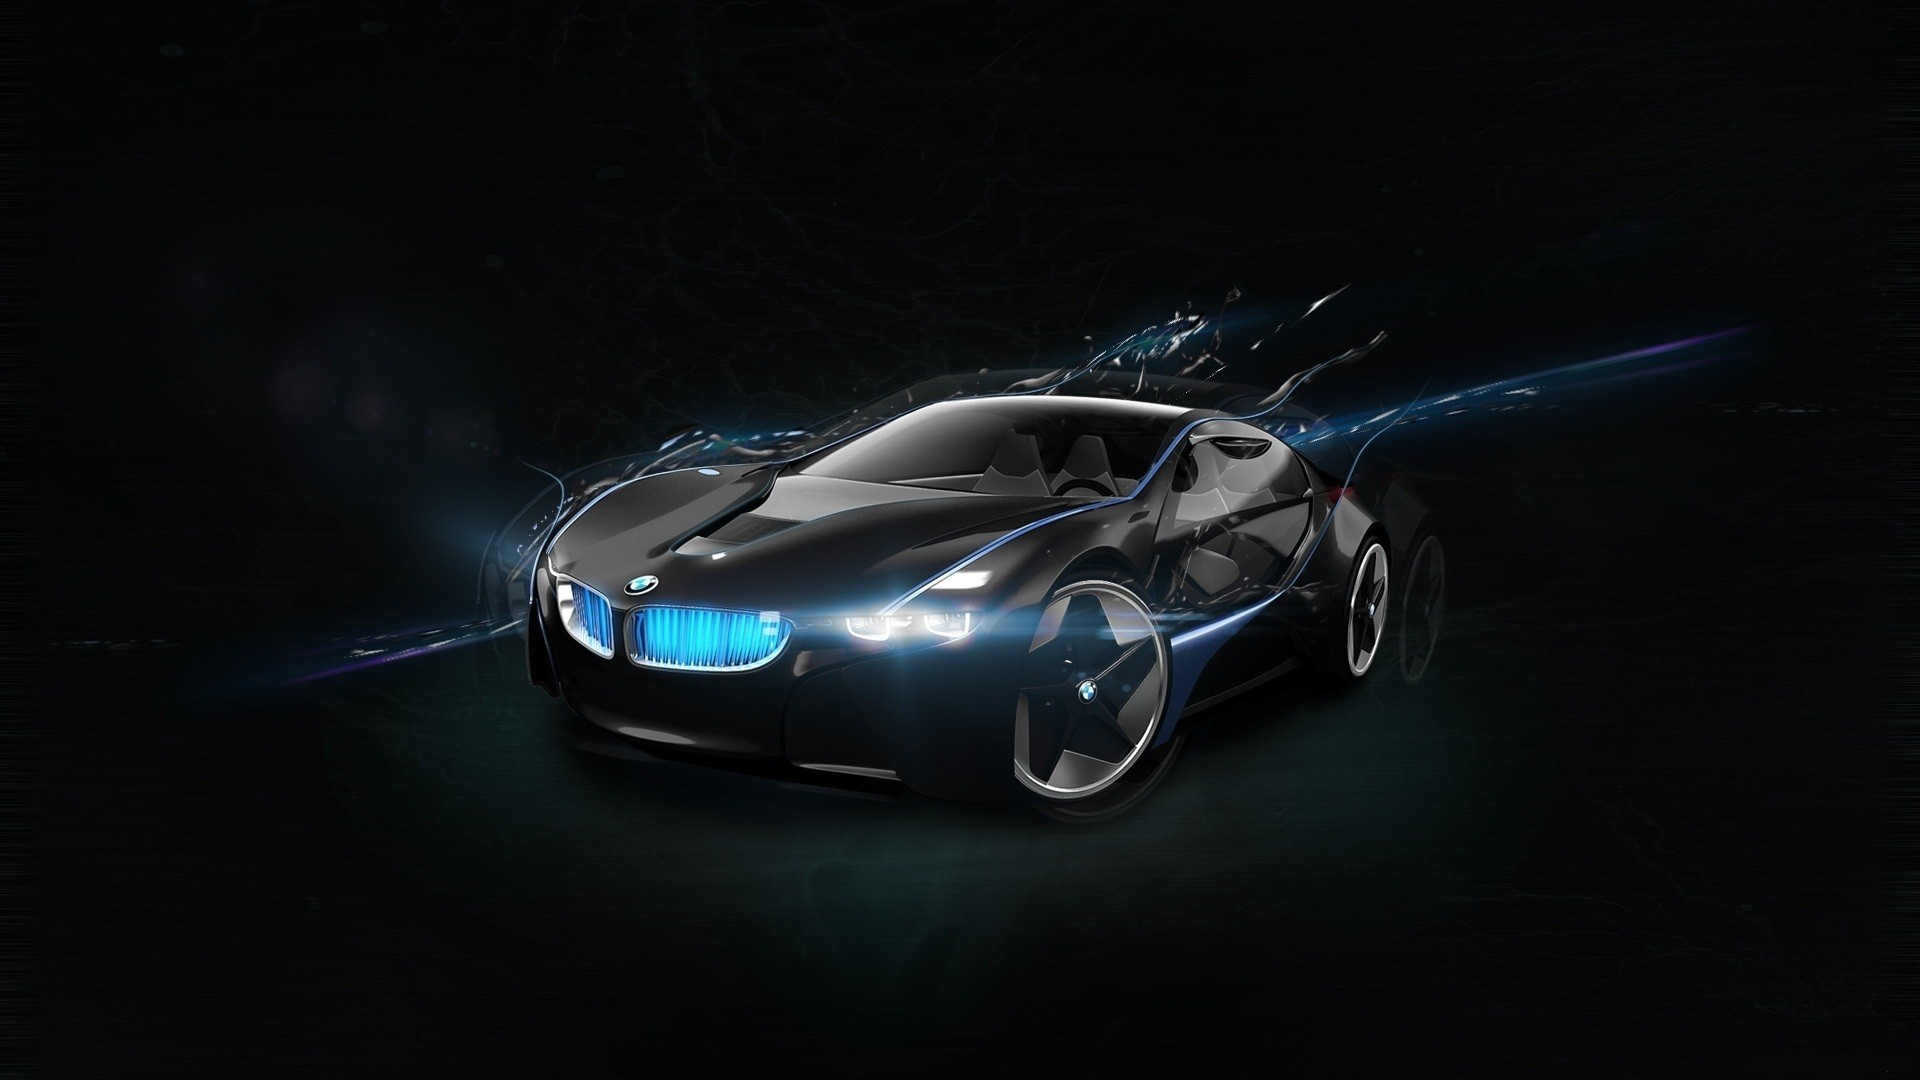 1920x1080 Bmw Vision Cgi Laptop Full Hd 1080p Hd 4k Wallpapers